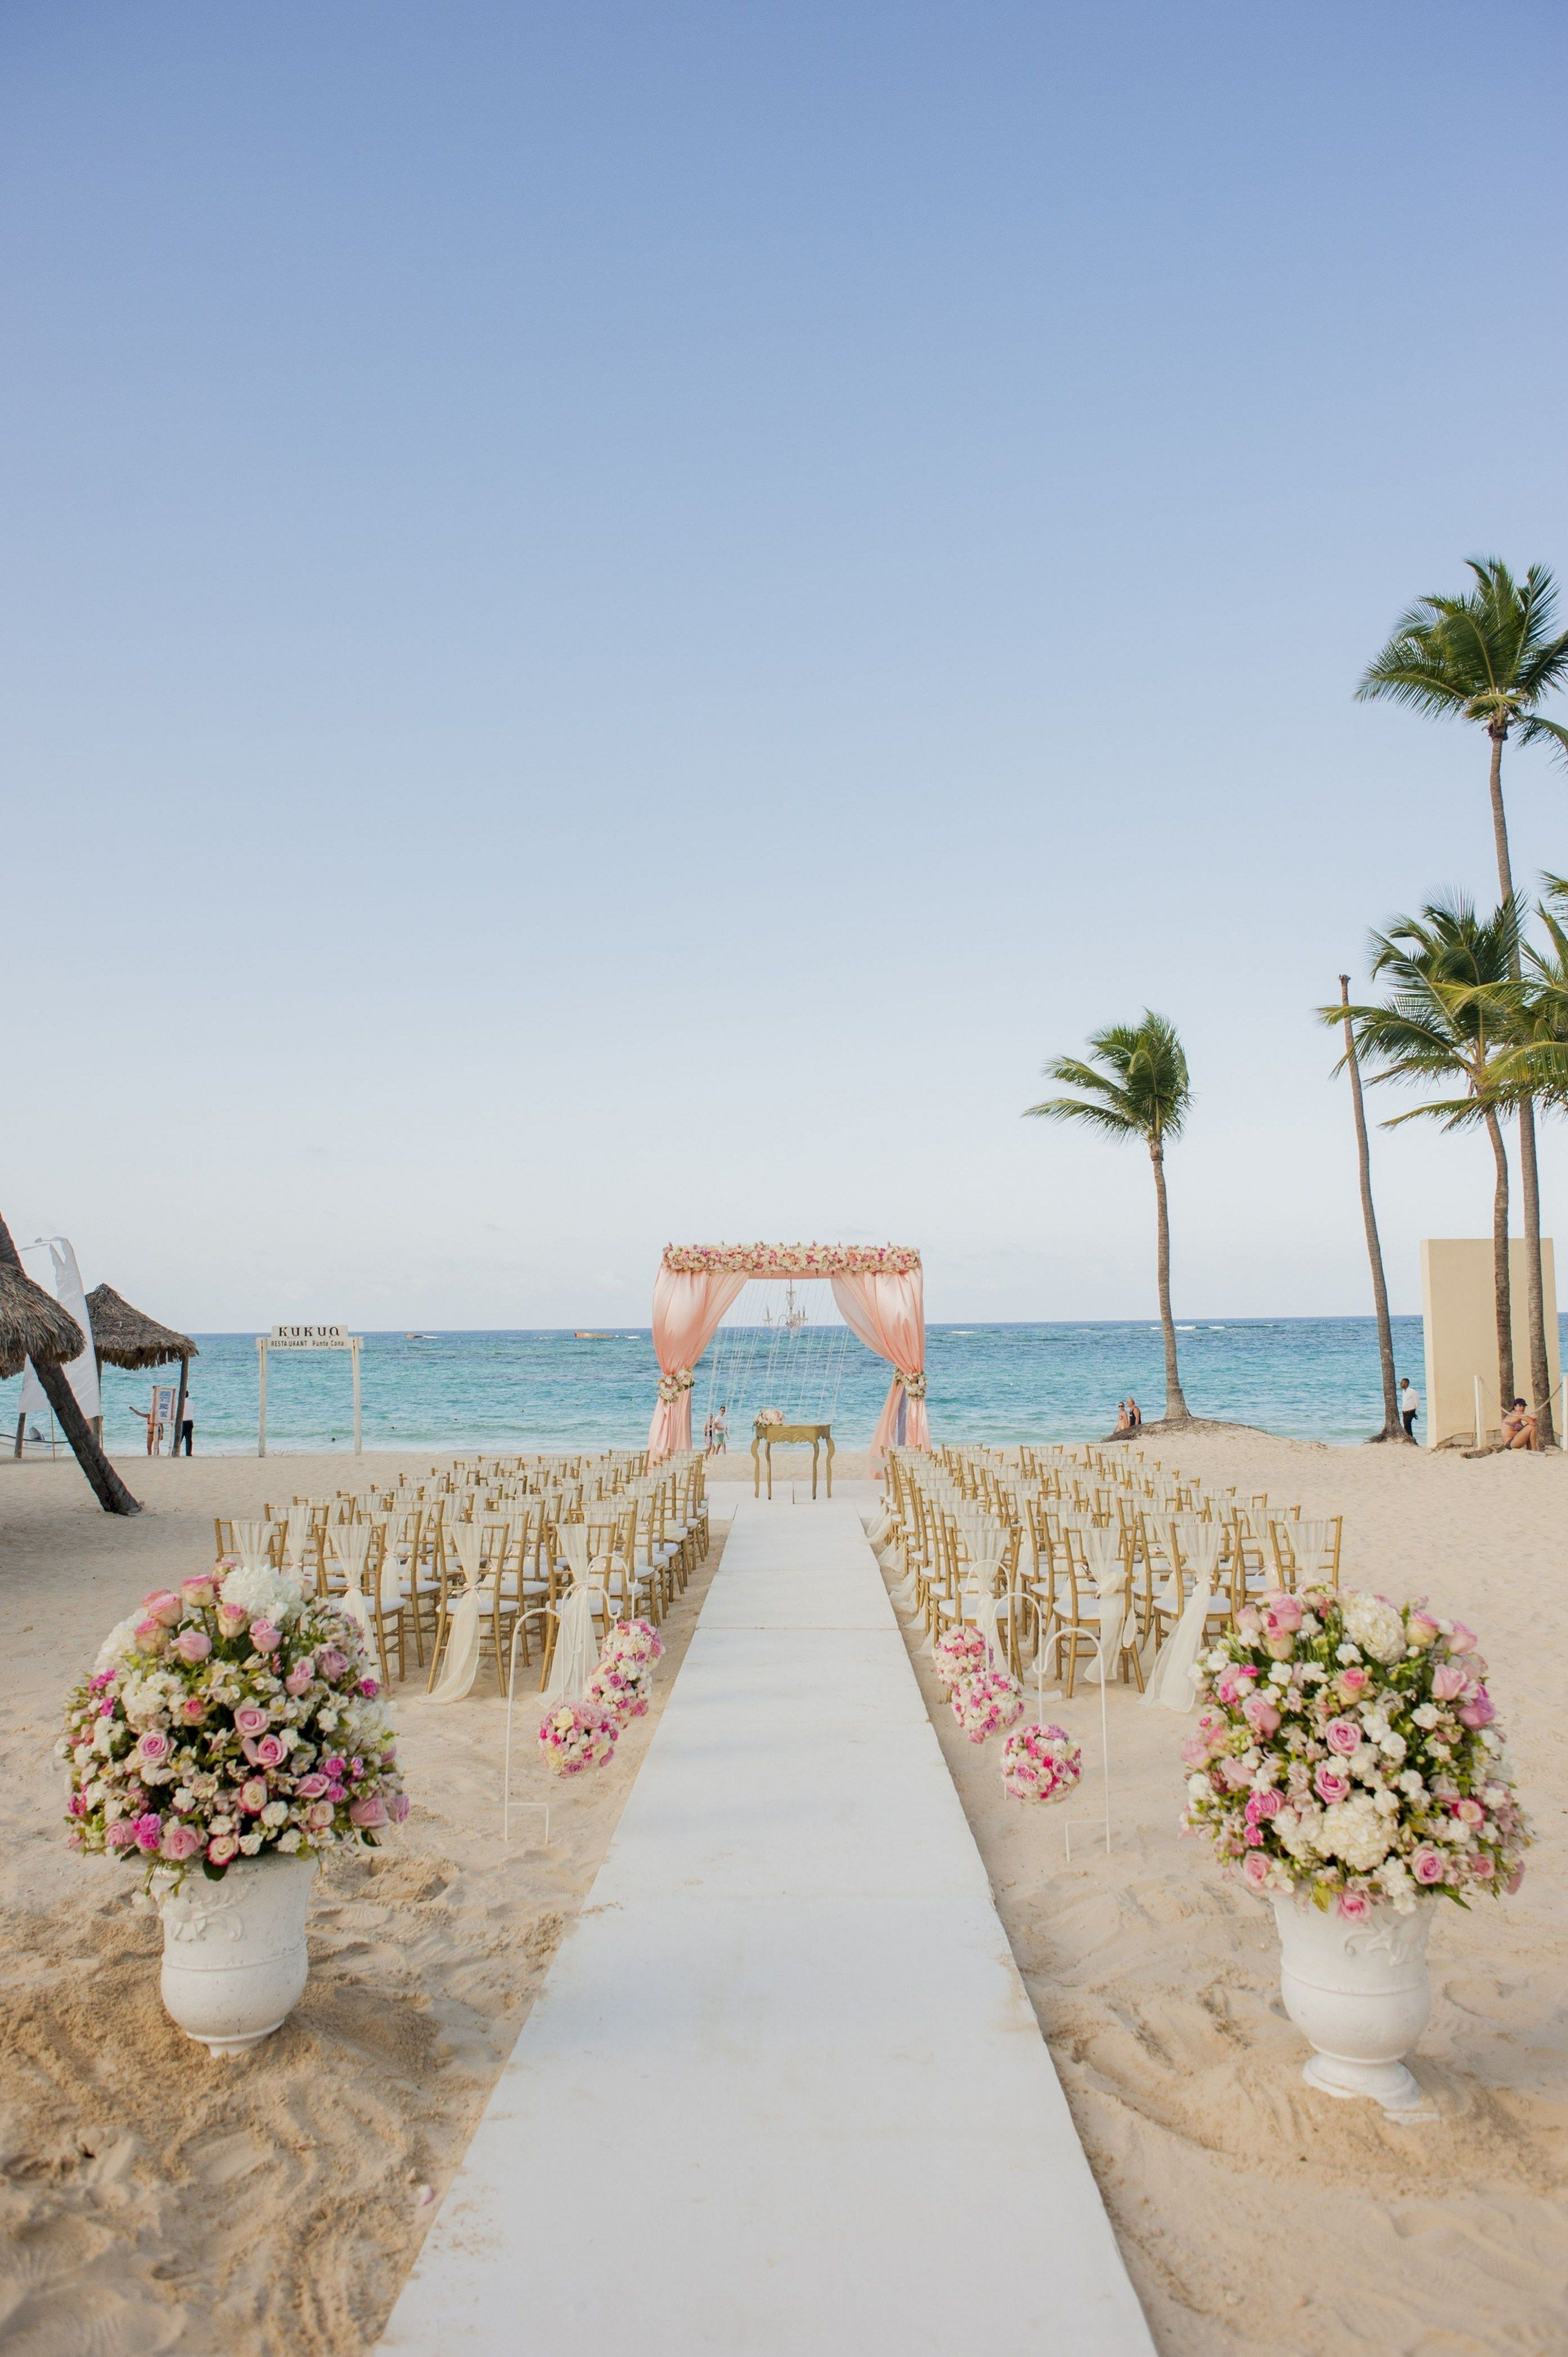 Pin By Cindy Hemming On Civil Wedding Wedding Venues Beach Romantic Beach Wedding Beach Wedding Inspiration